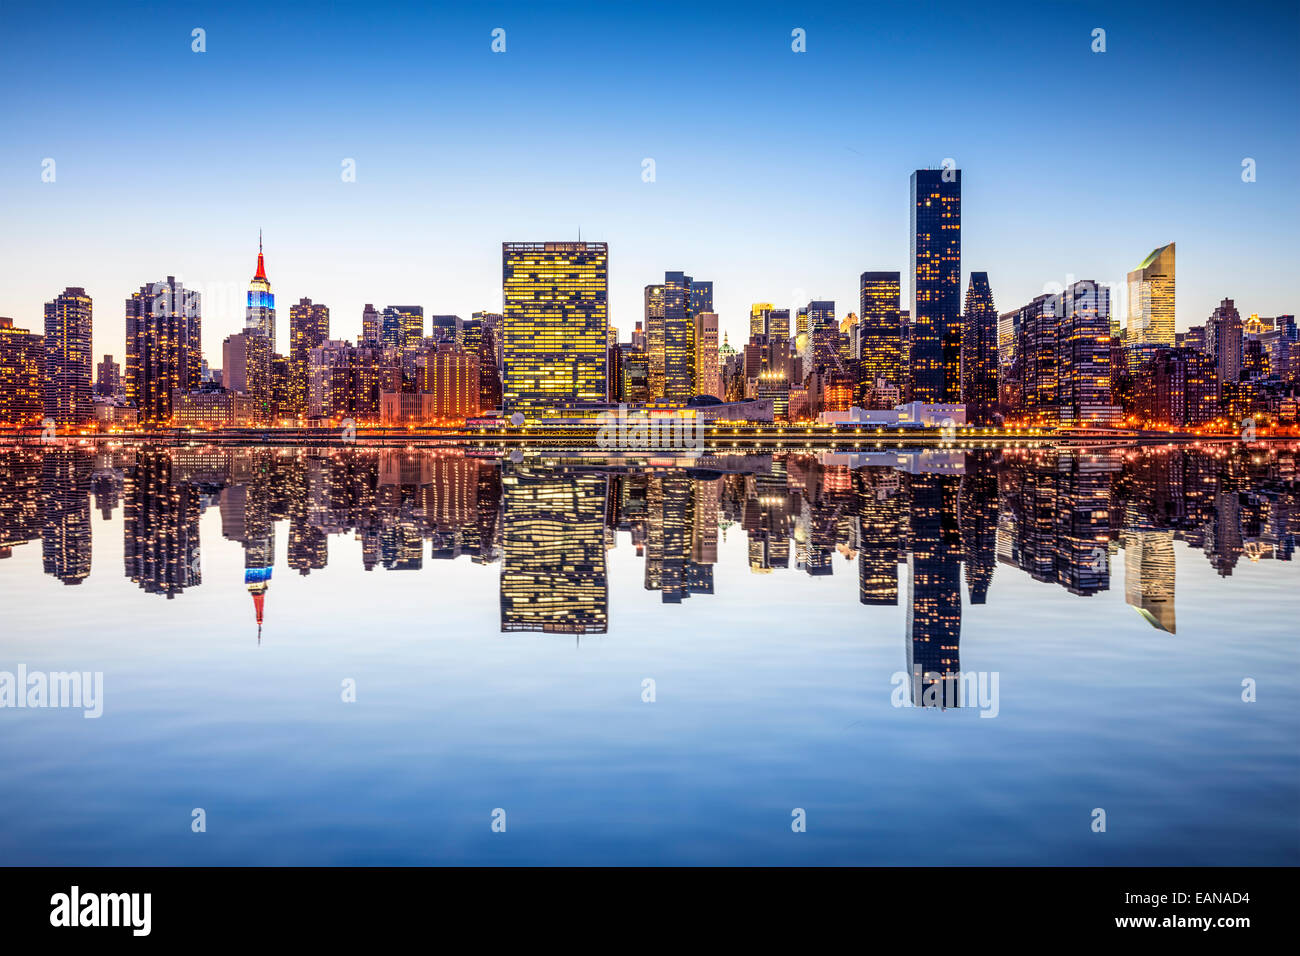 New York City, USA city skyline of midtown Manhattan from across the East River. - Stock Image